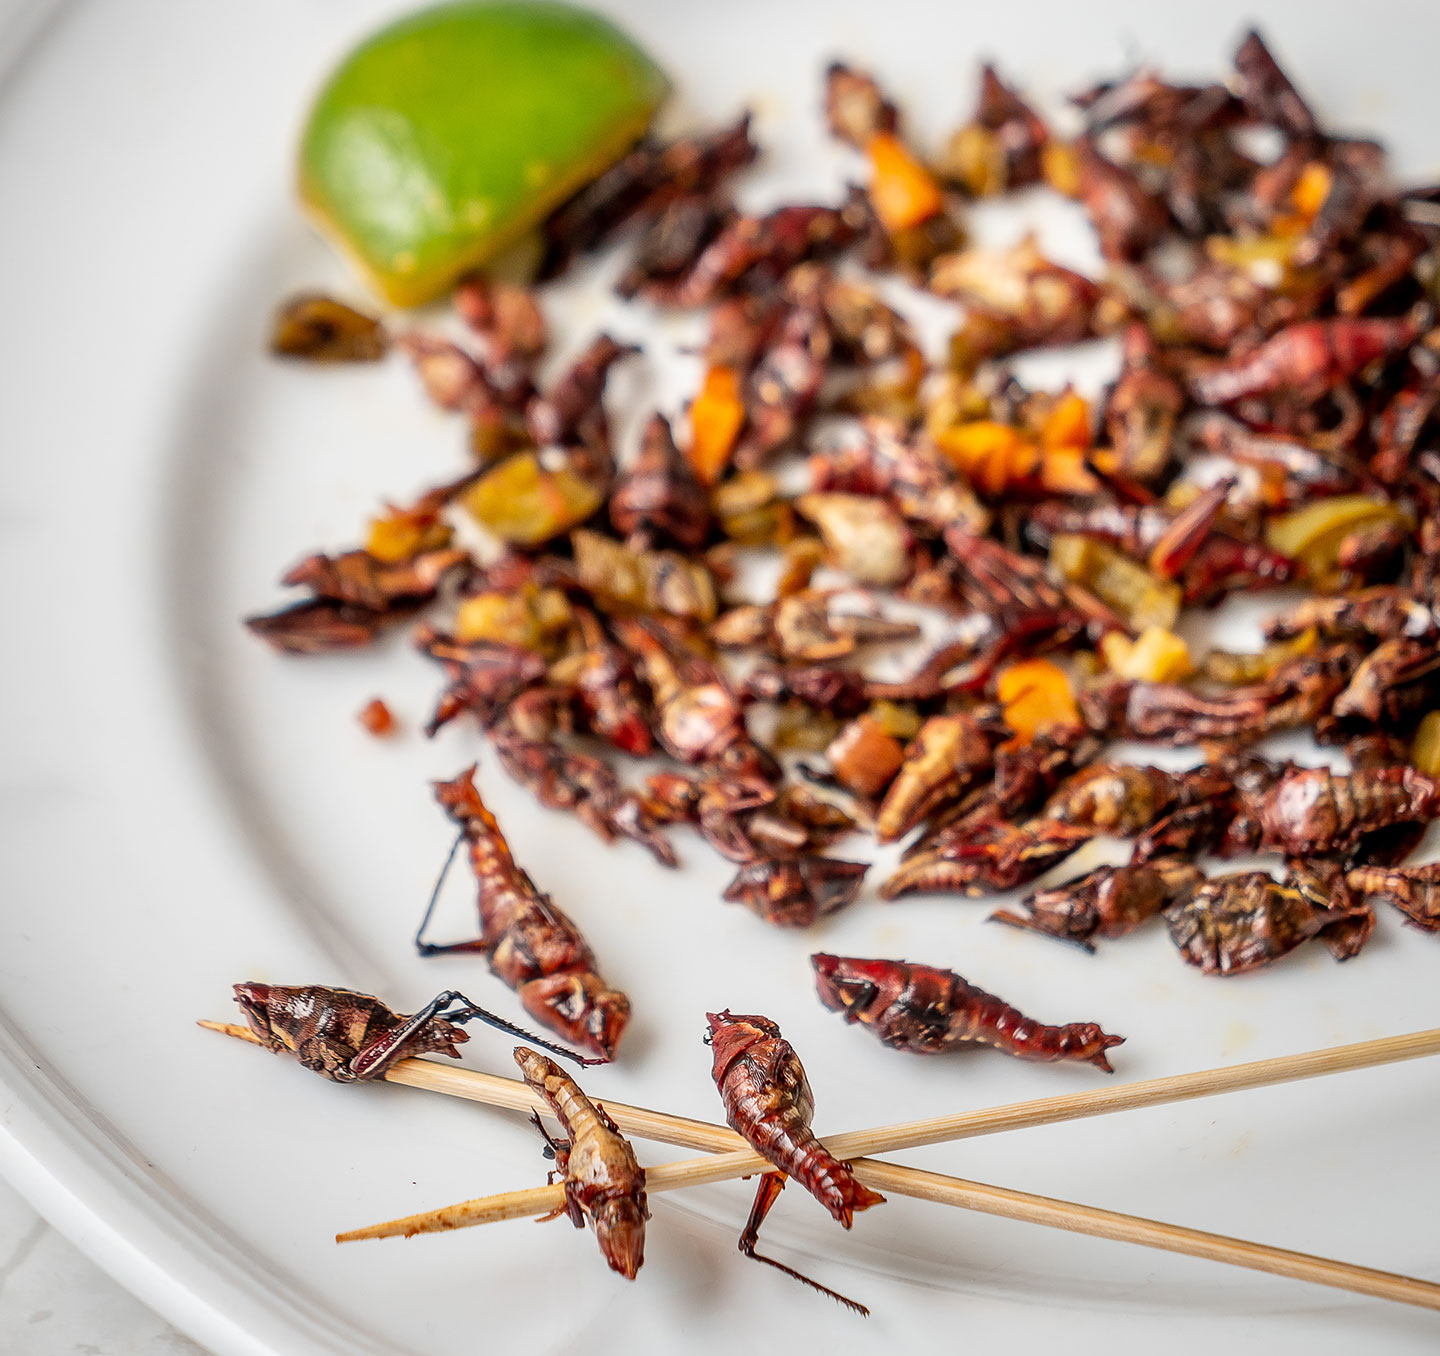 This plate of grasshoppers (chapulines) is from Tolache, a Mexican restaurant in New York City.